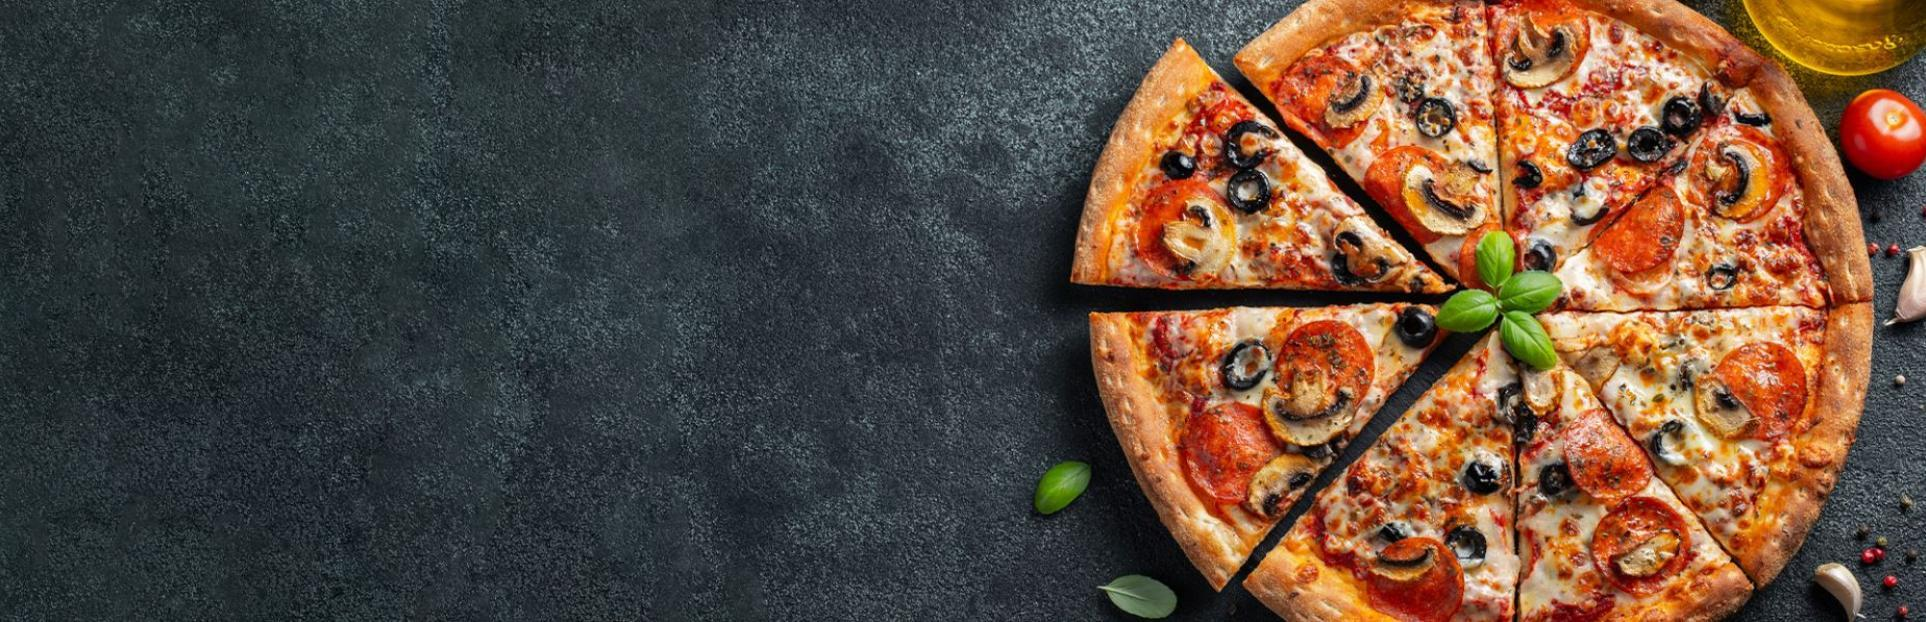 innovations in frozen pizza glanbia nutritionals